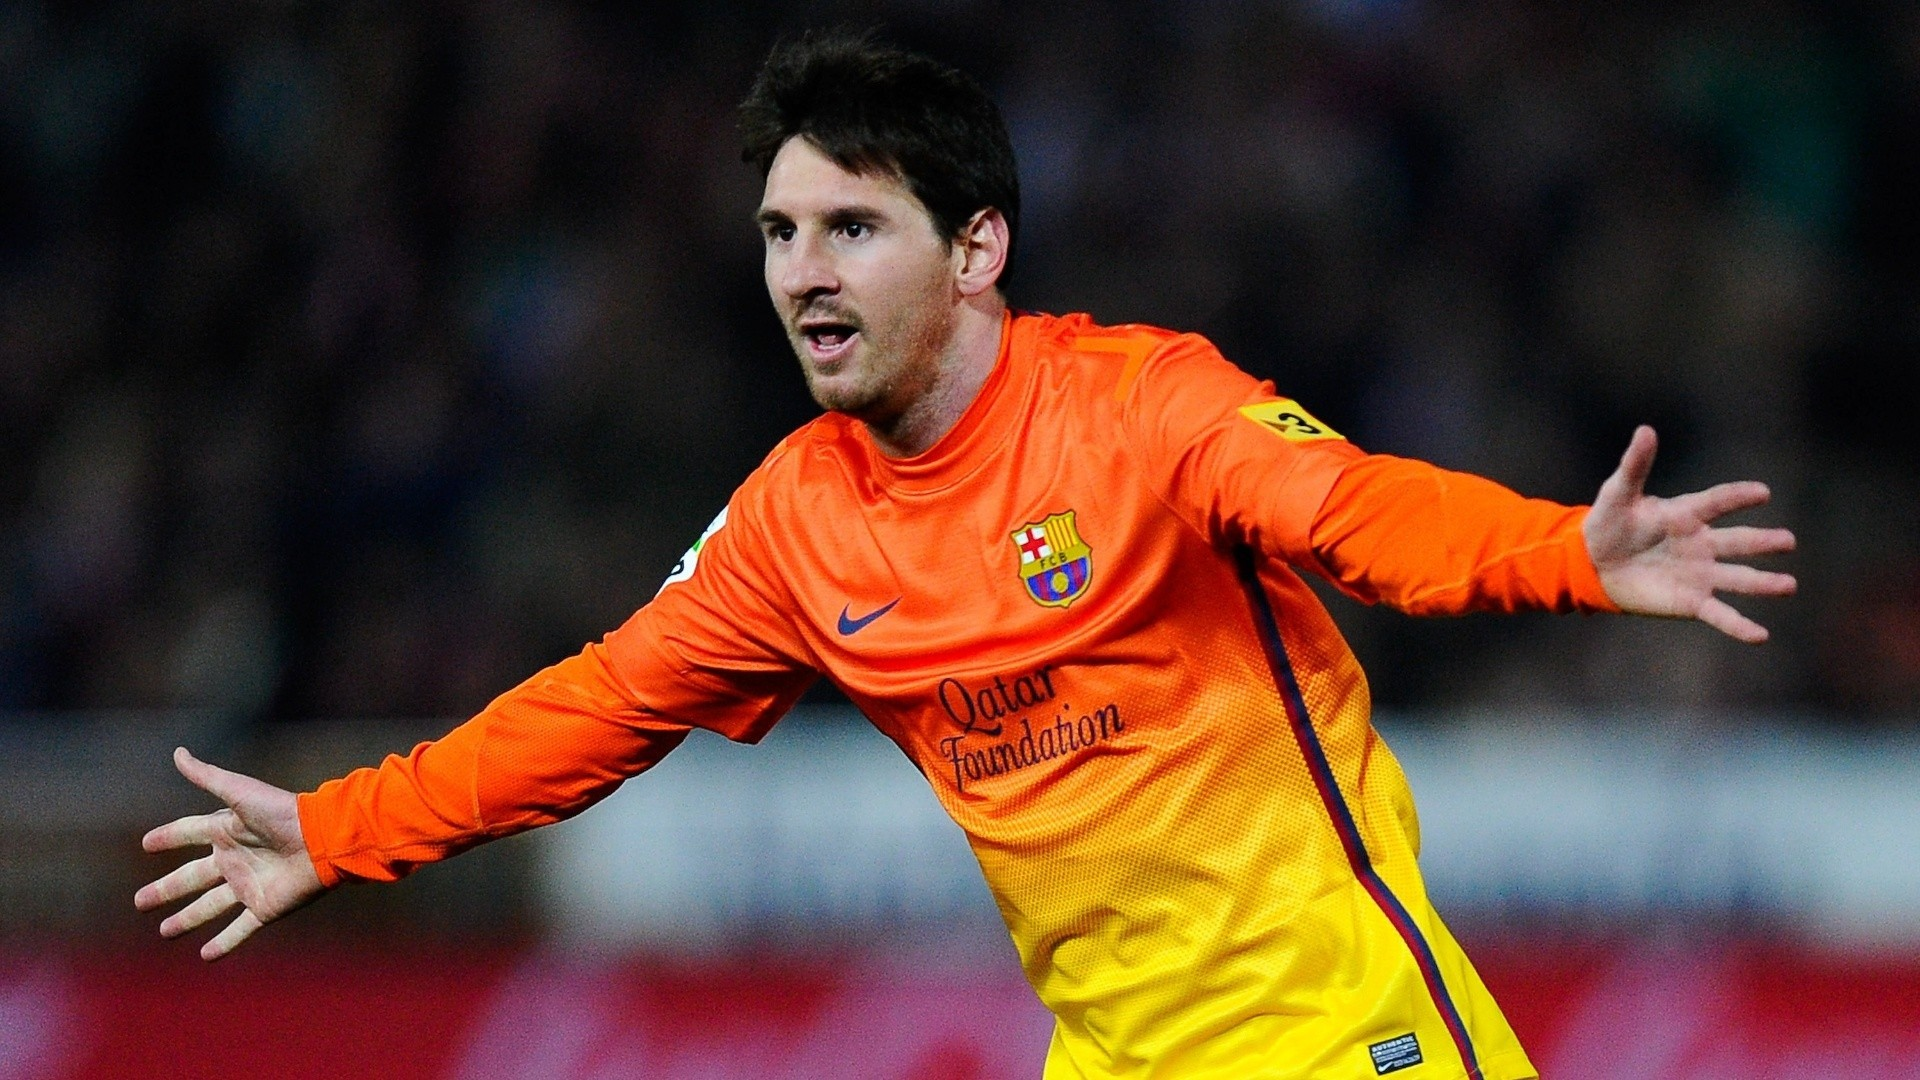 1920x1080 Messi Wallpaper, Leo, Lionel Messi Photos, Soccer, Best Talent, Jersey,  Football Player, Messi Hd Images, 1920×1080 Wallpaper HD